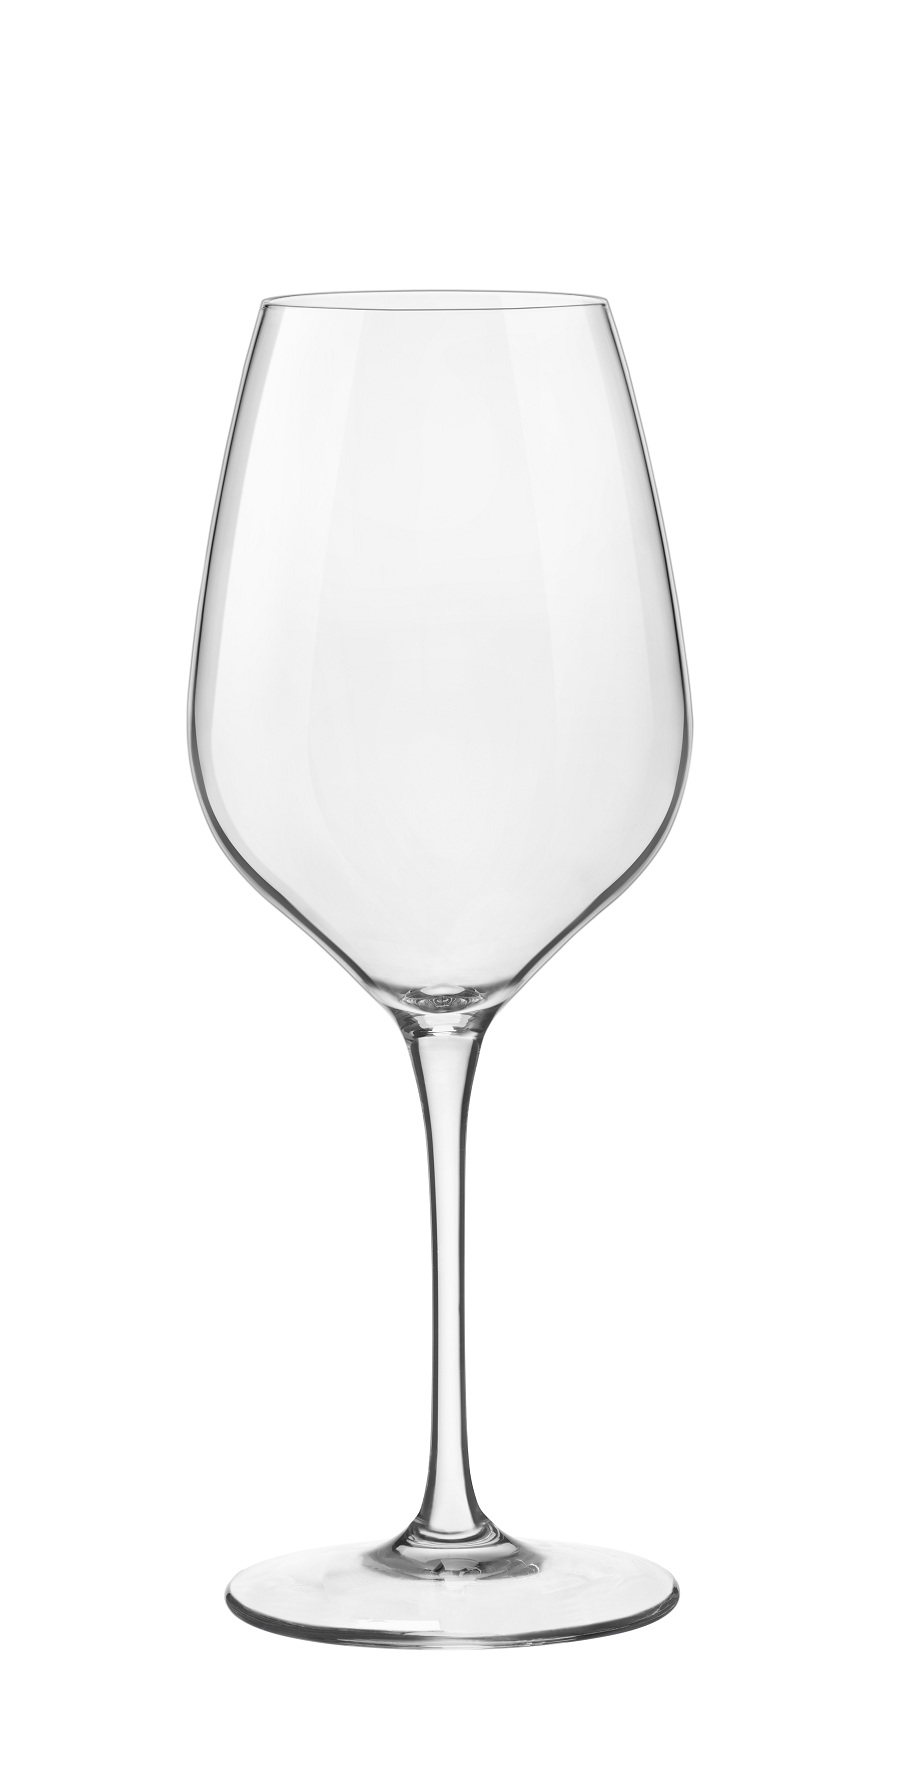 900x1789 New Glassware Bormioli Rocco Tre Sensi Wine Tasting Glass